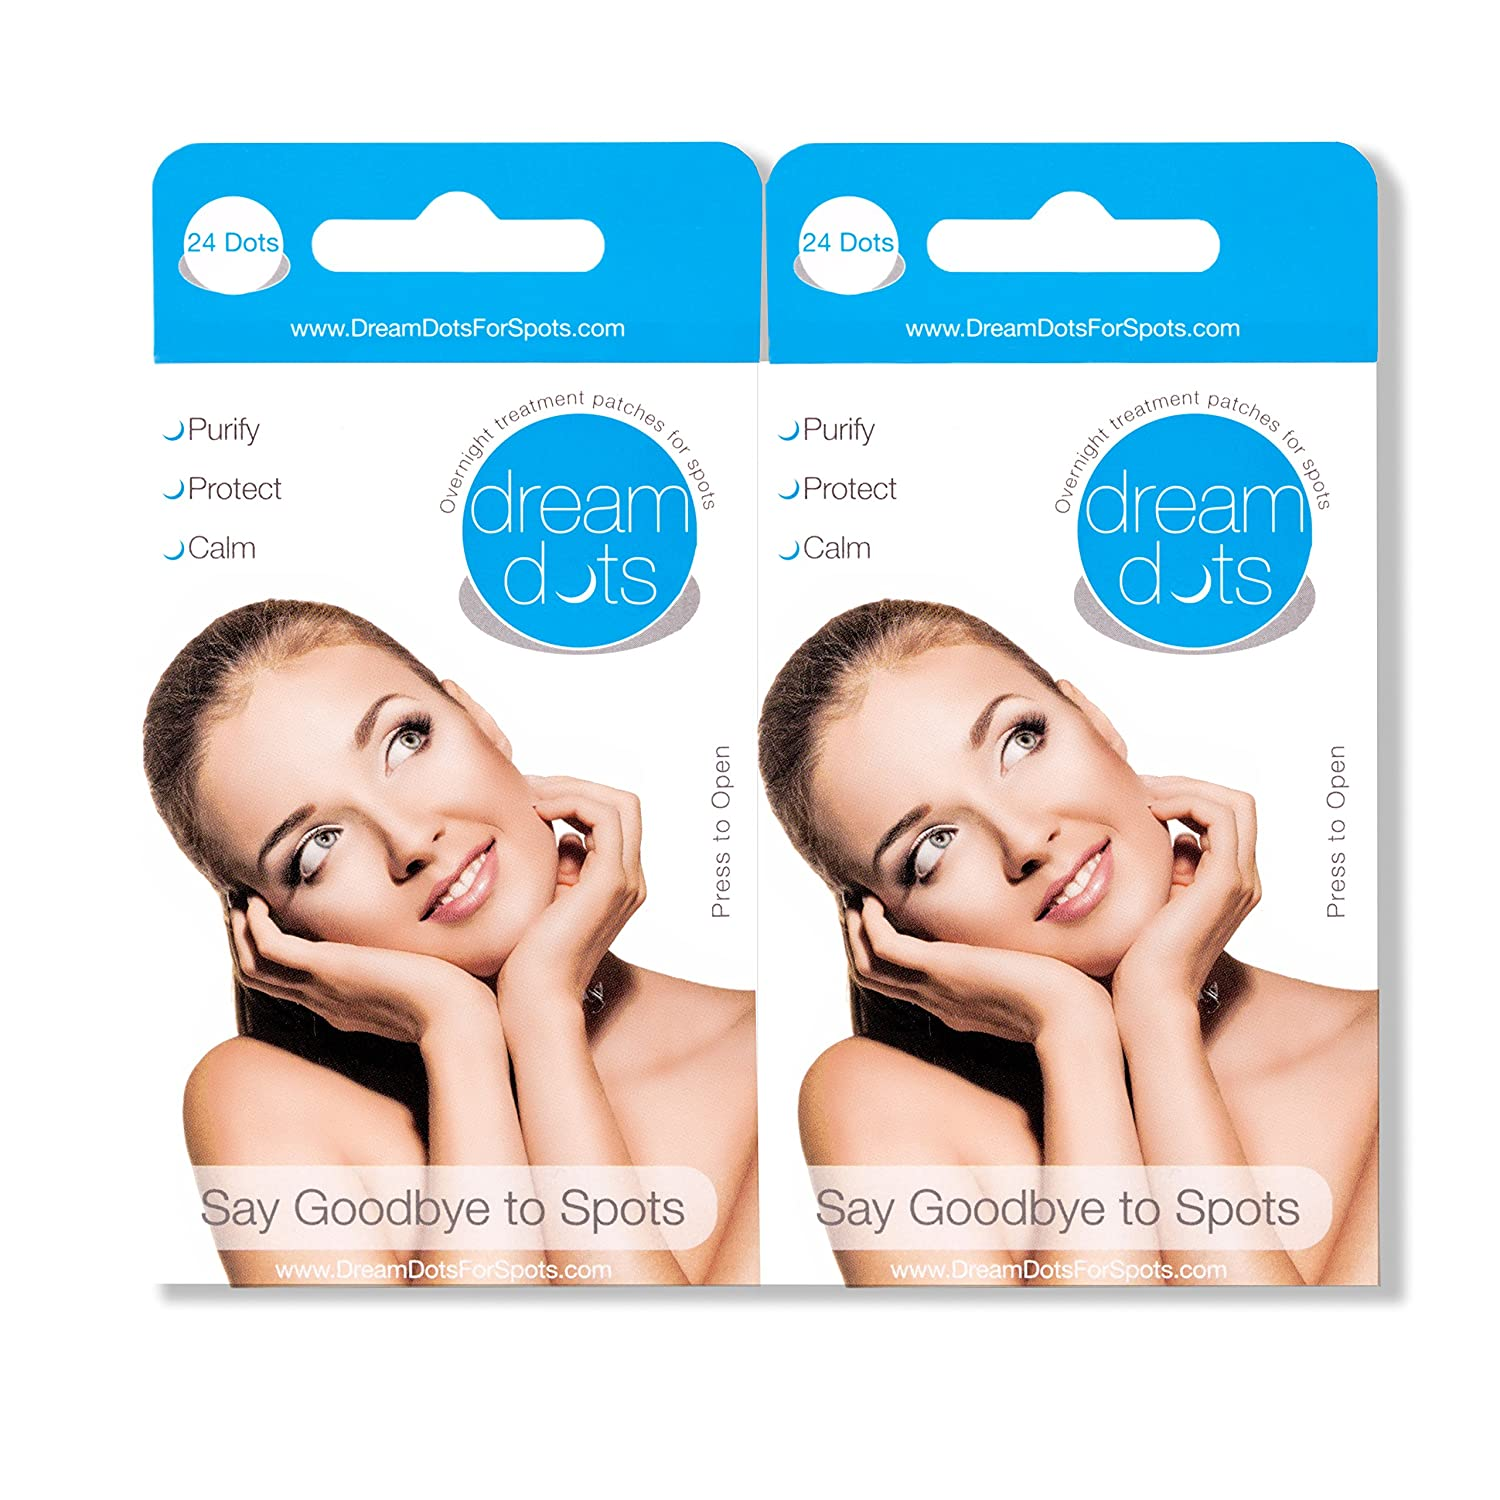 Dream Dots for Spots - Overnight Acne Skin Treatment Patch (Traitement De L'Acné) 2 Boxes (48 Patches) Dream Care Products Ltd DD002